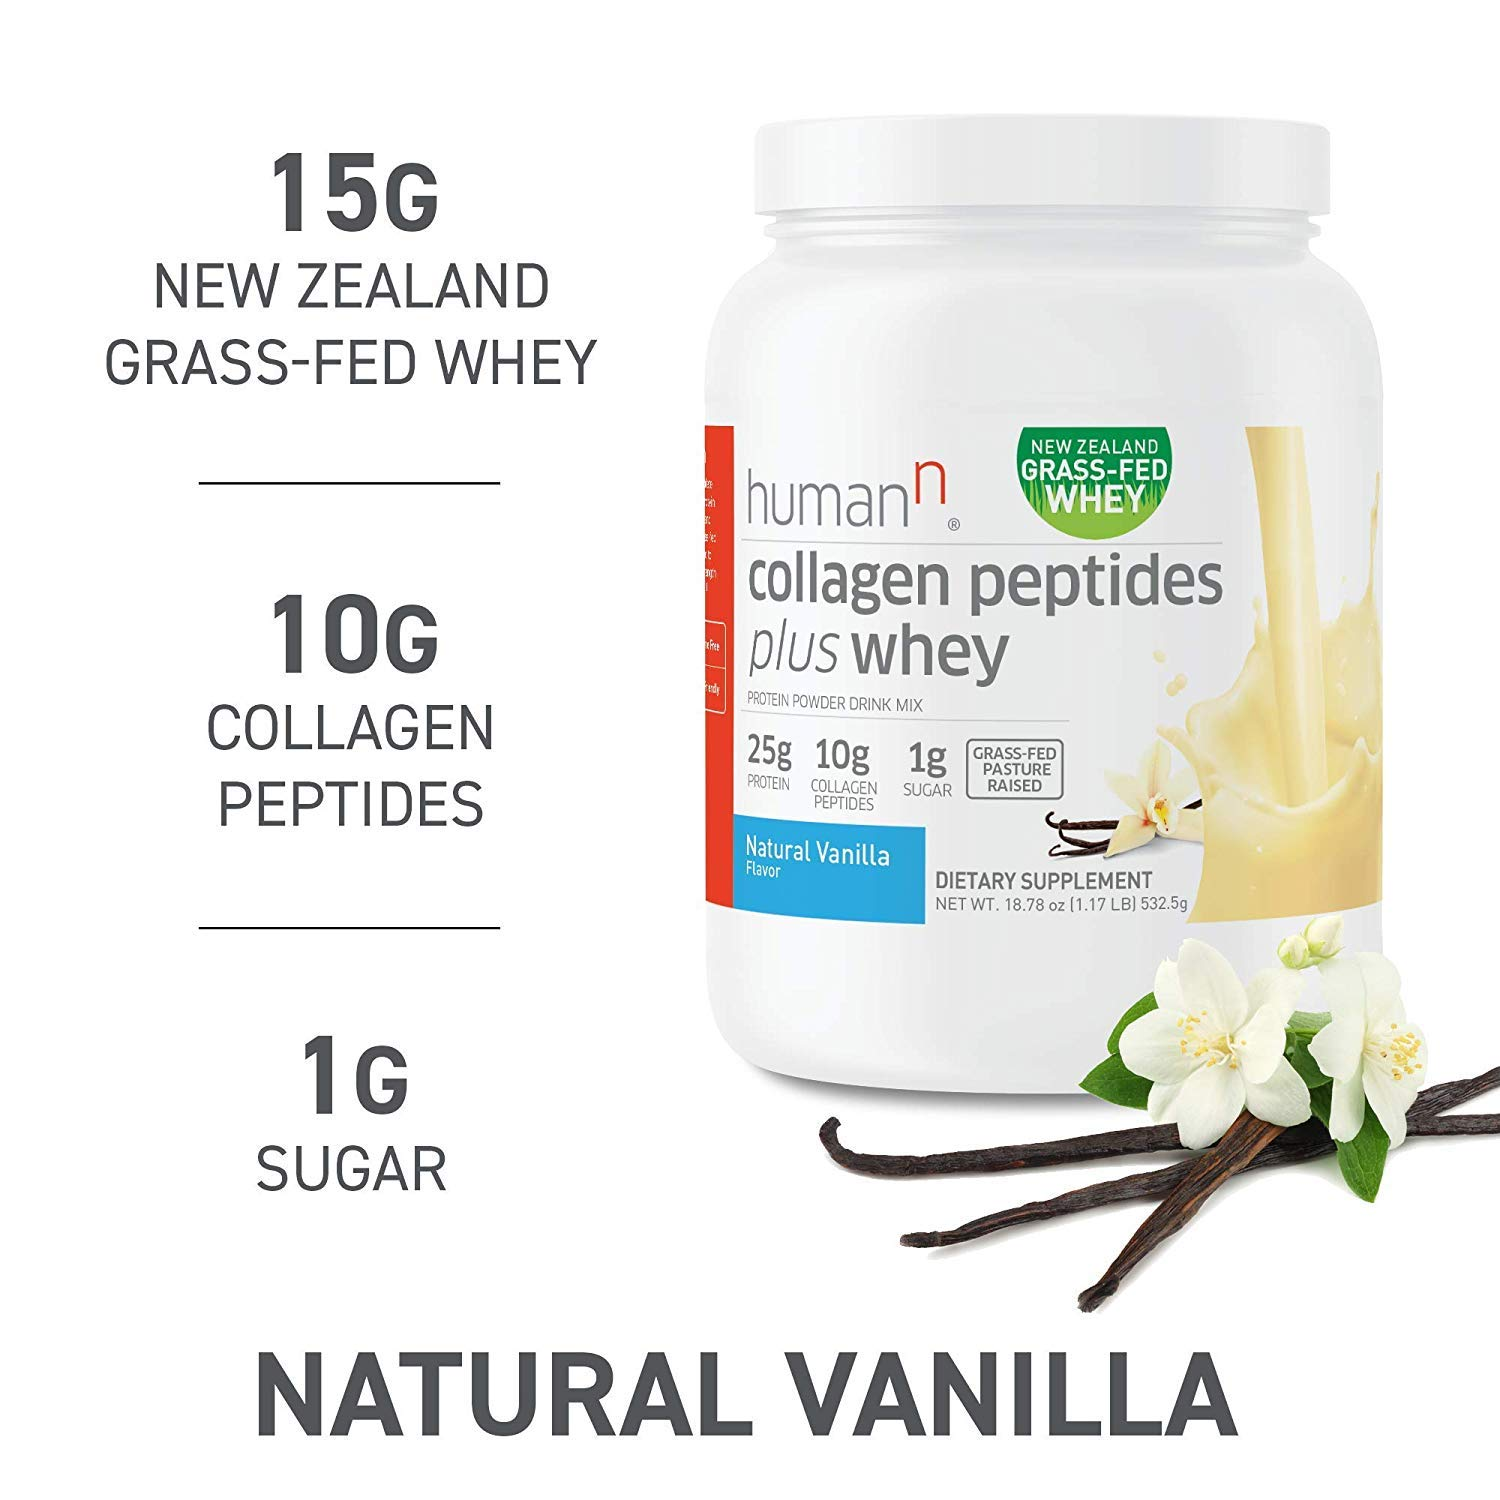 HumanN Collagen Peptides Plus Whey | Low-Carb, Grass-Fed, Pasture-Raised, 10 Grams of Collagen Peptides Plus 15 Grams of Whey Protein, Gluten Free, Soy Free, Non-GMO, Type I and III (Vanilla) by HumanN